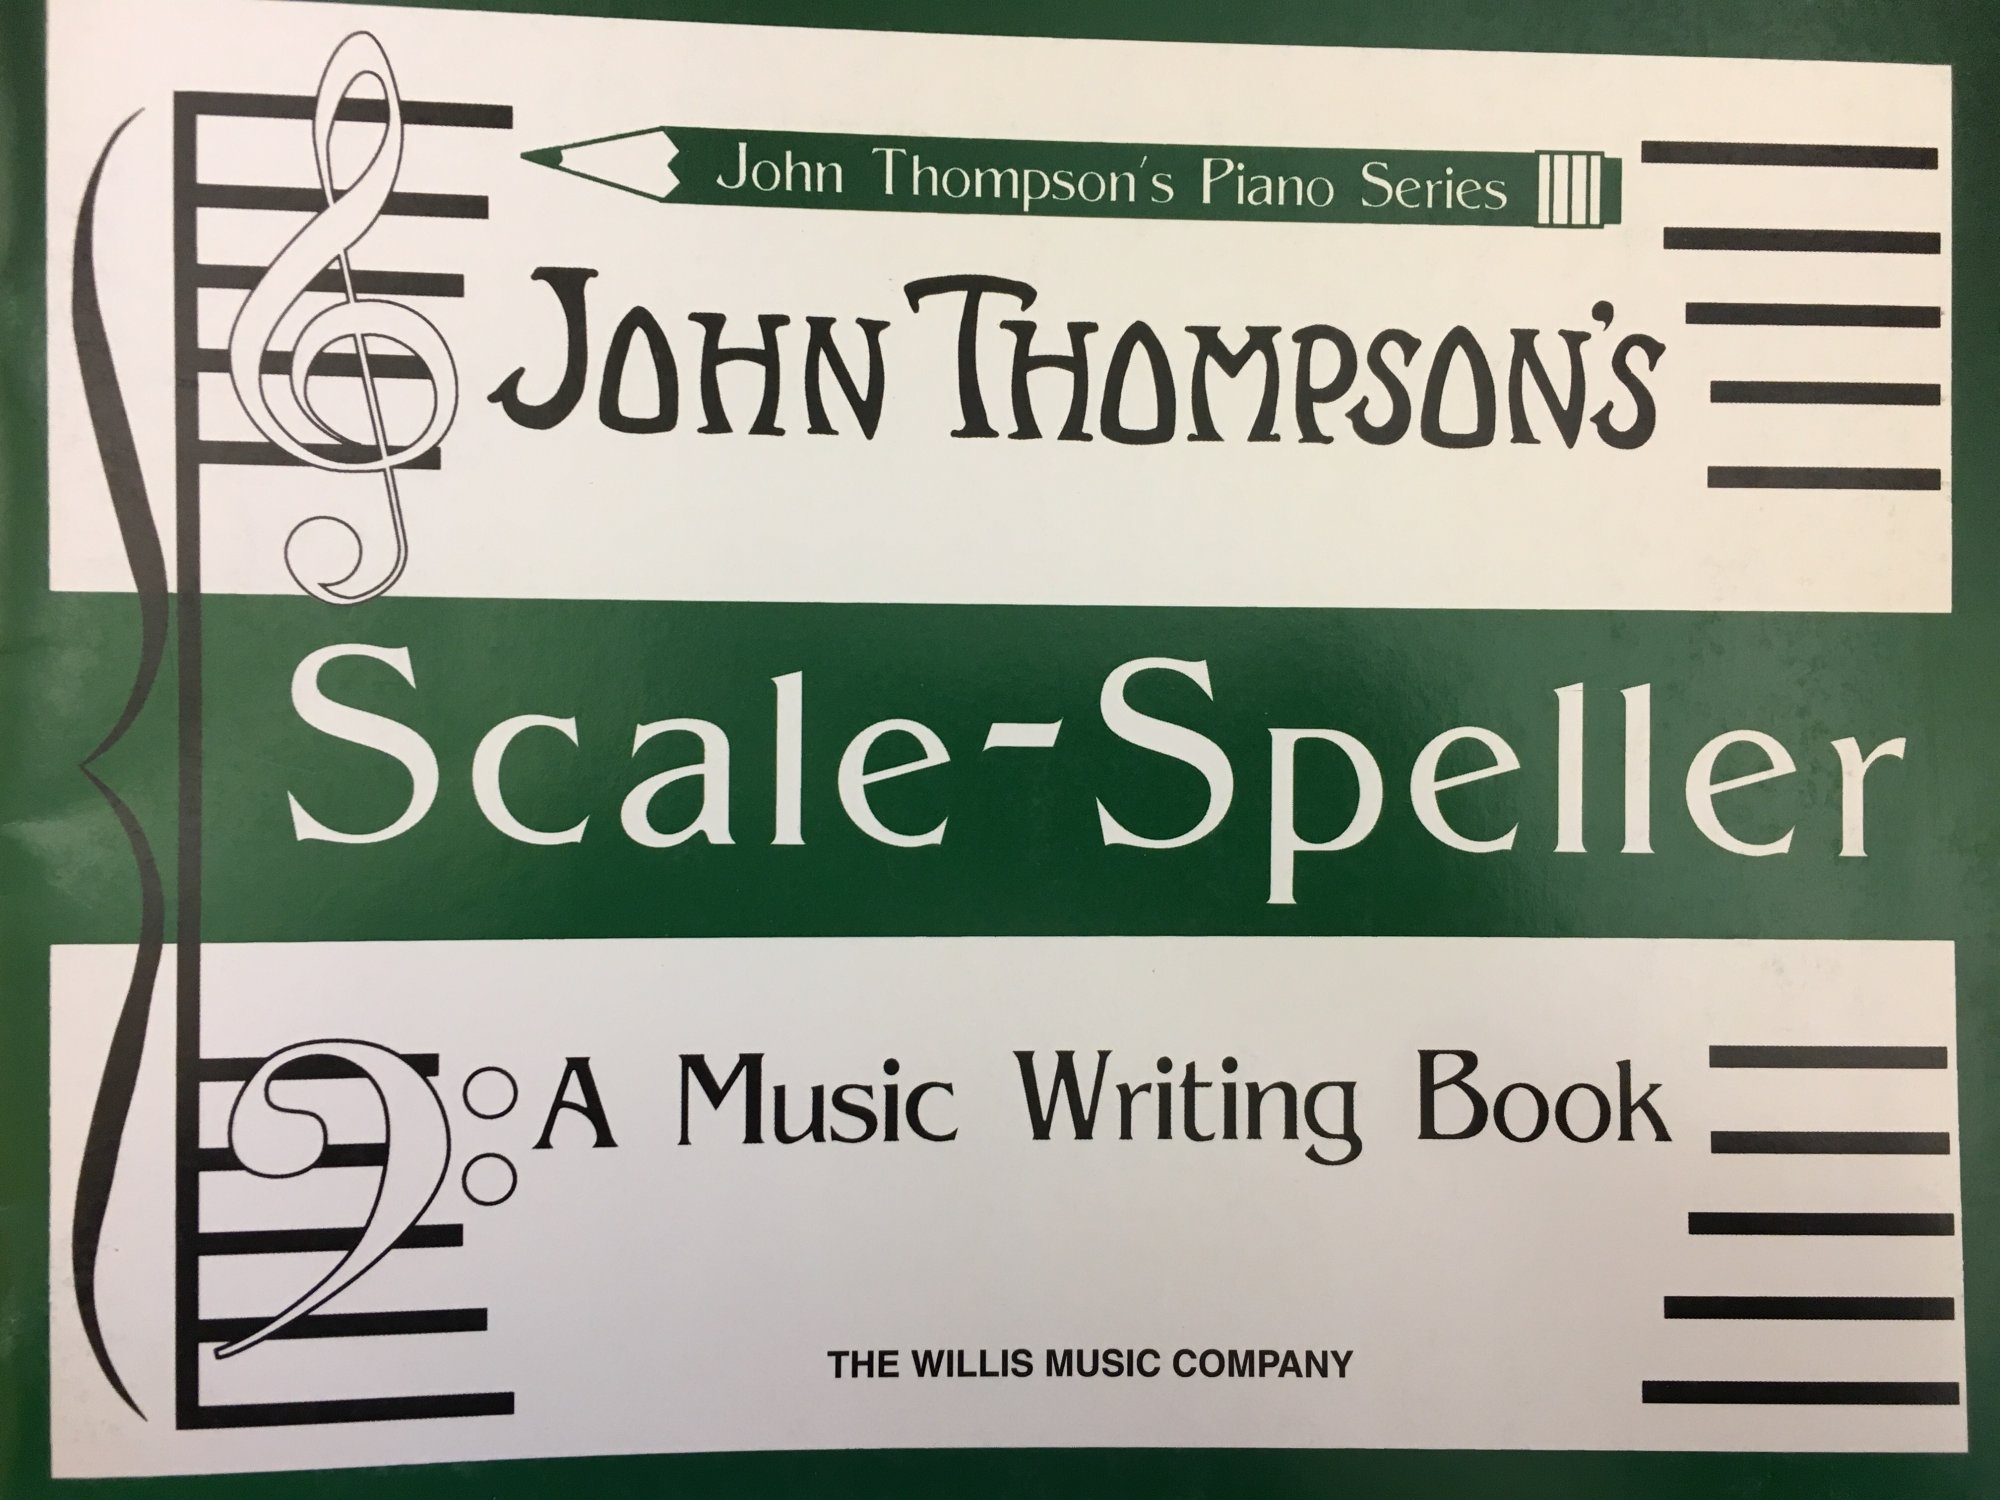 John Thompson's Piano Series Scale-Speller